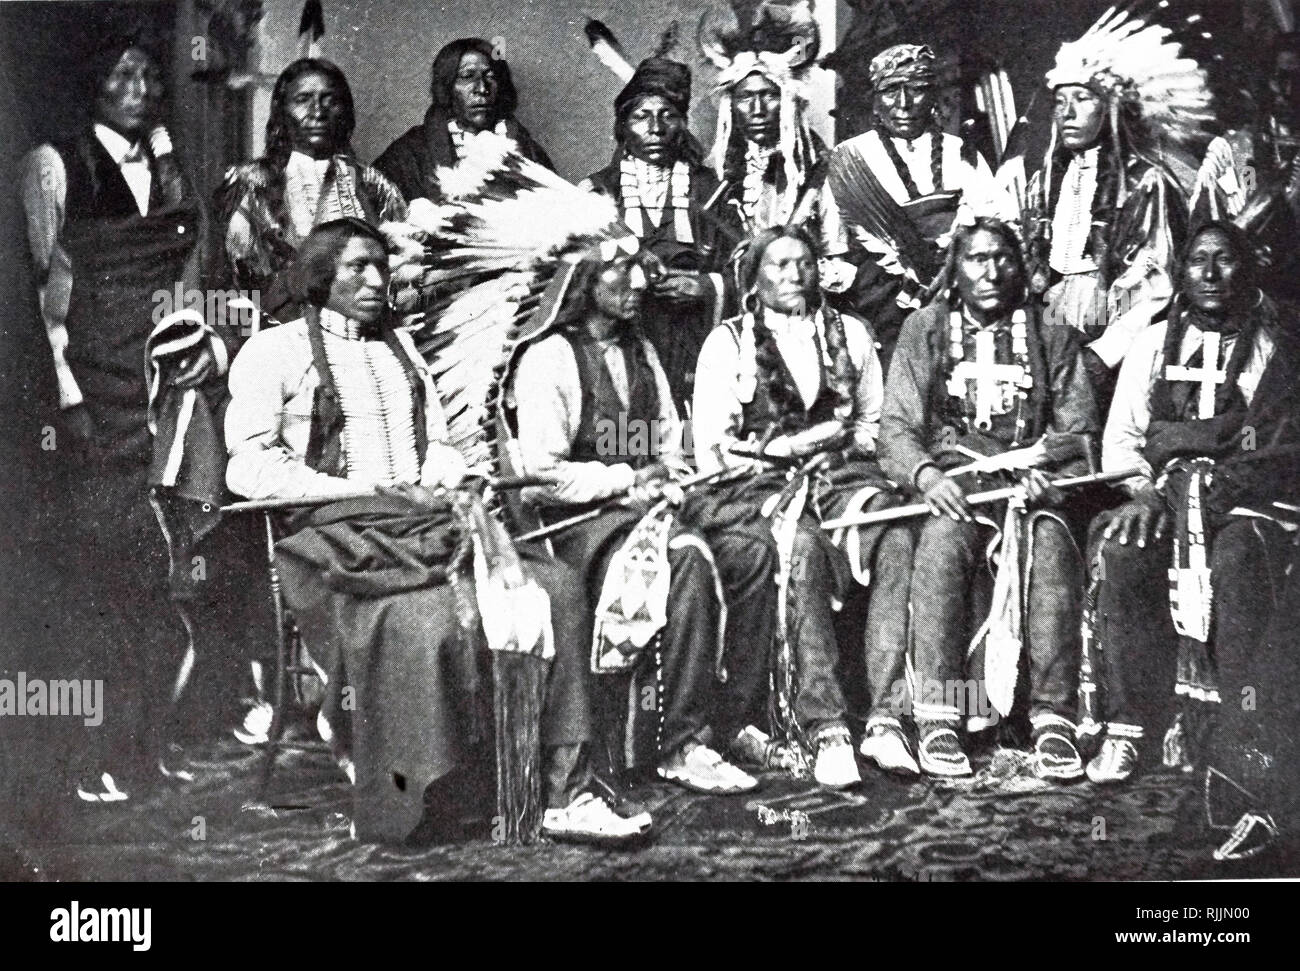 Photograph of Sioux Chiefs in the East Room of the White House. Photograph was taken by Mathew Brady (1822-1896) one of the earliest photographers in American history. Dated 19th century - Stock Image